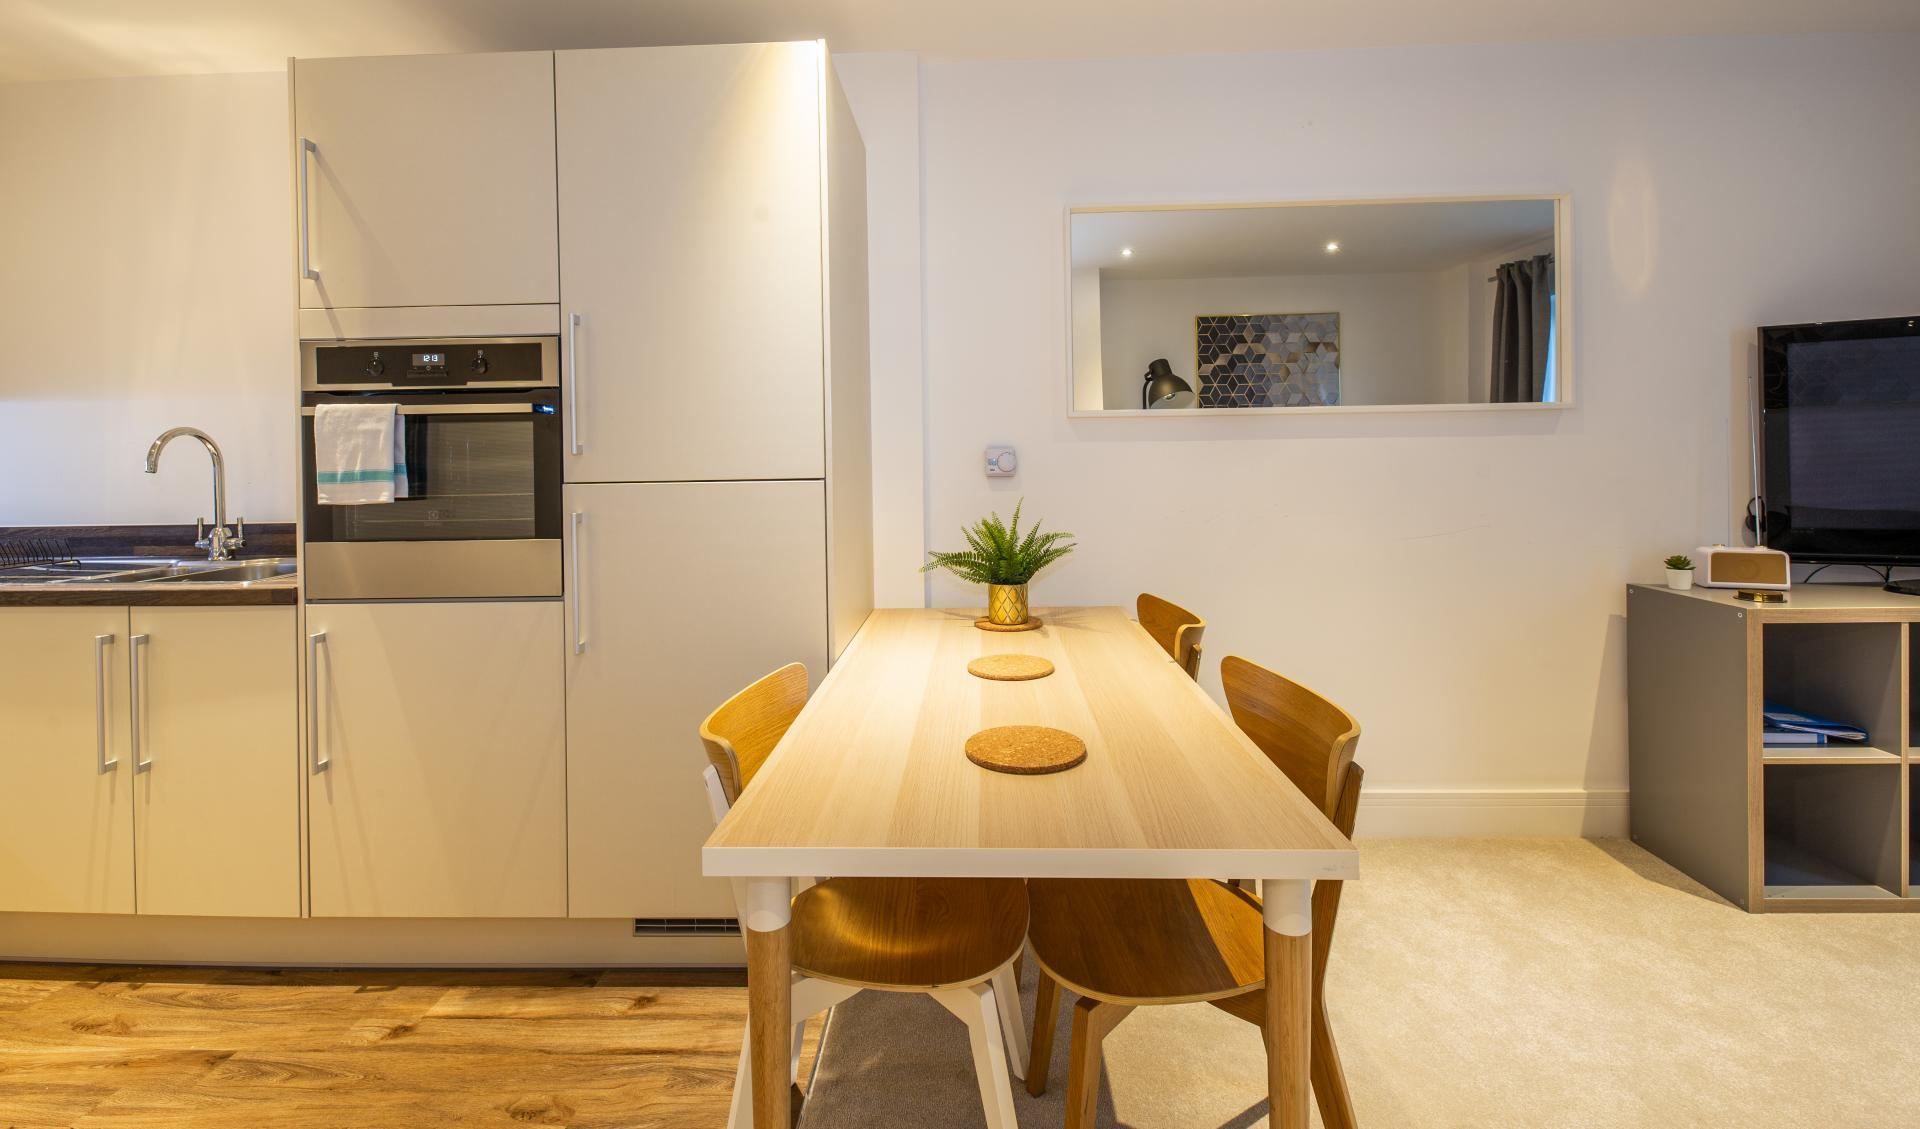 Kitchen diner at Austen House, Centre, Guildford - Citybase Apartments